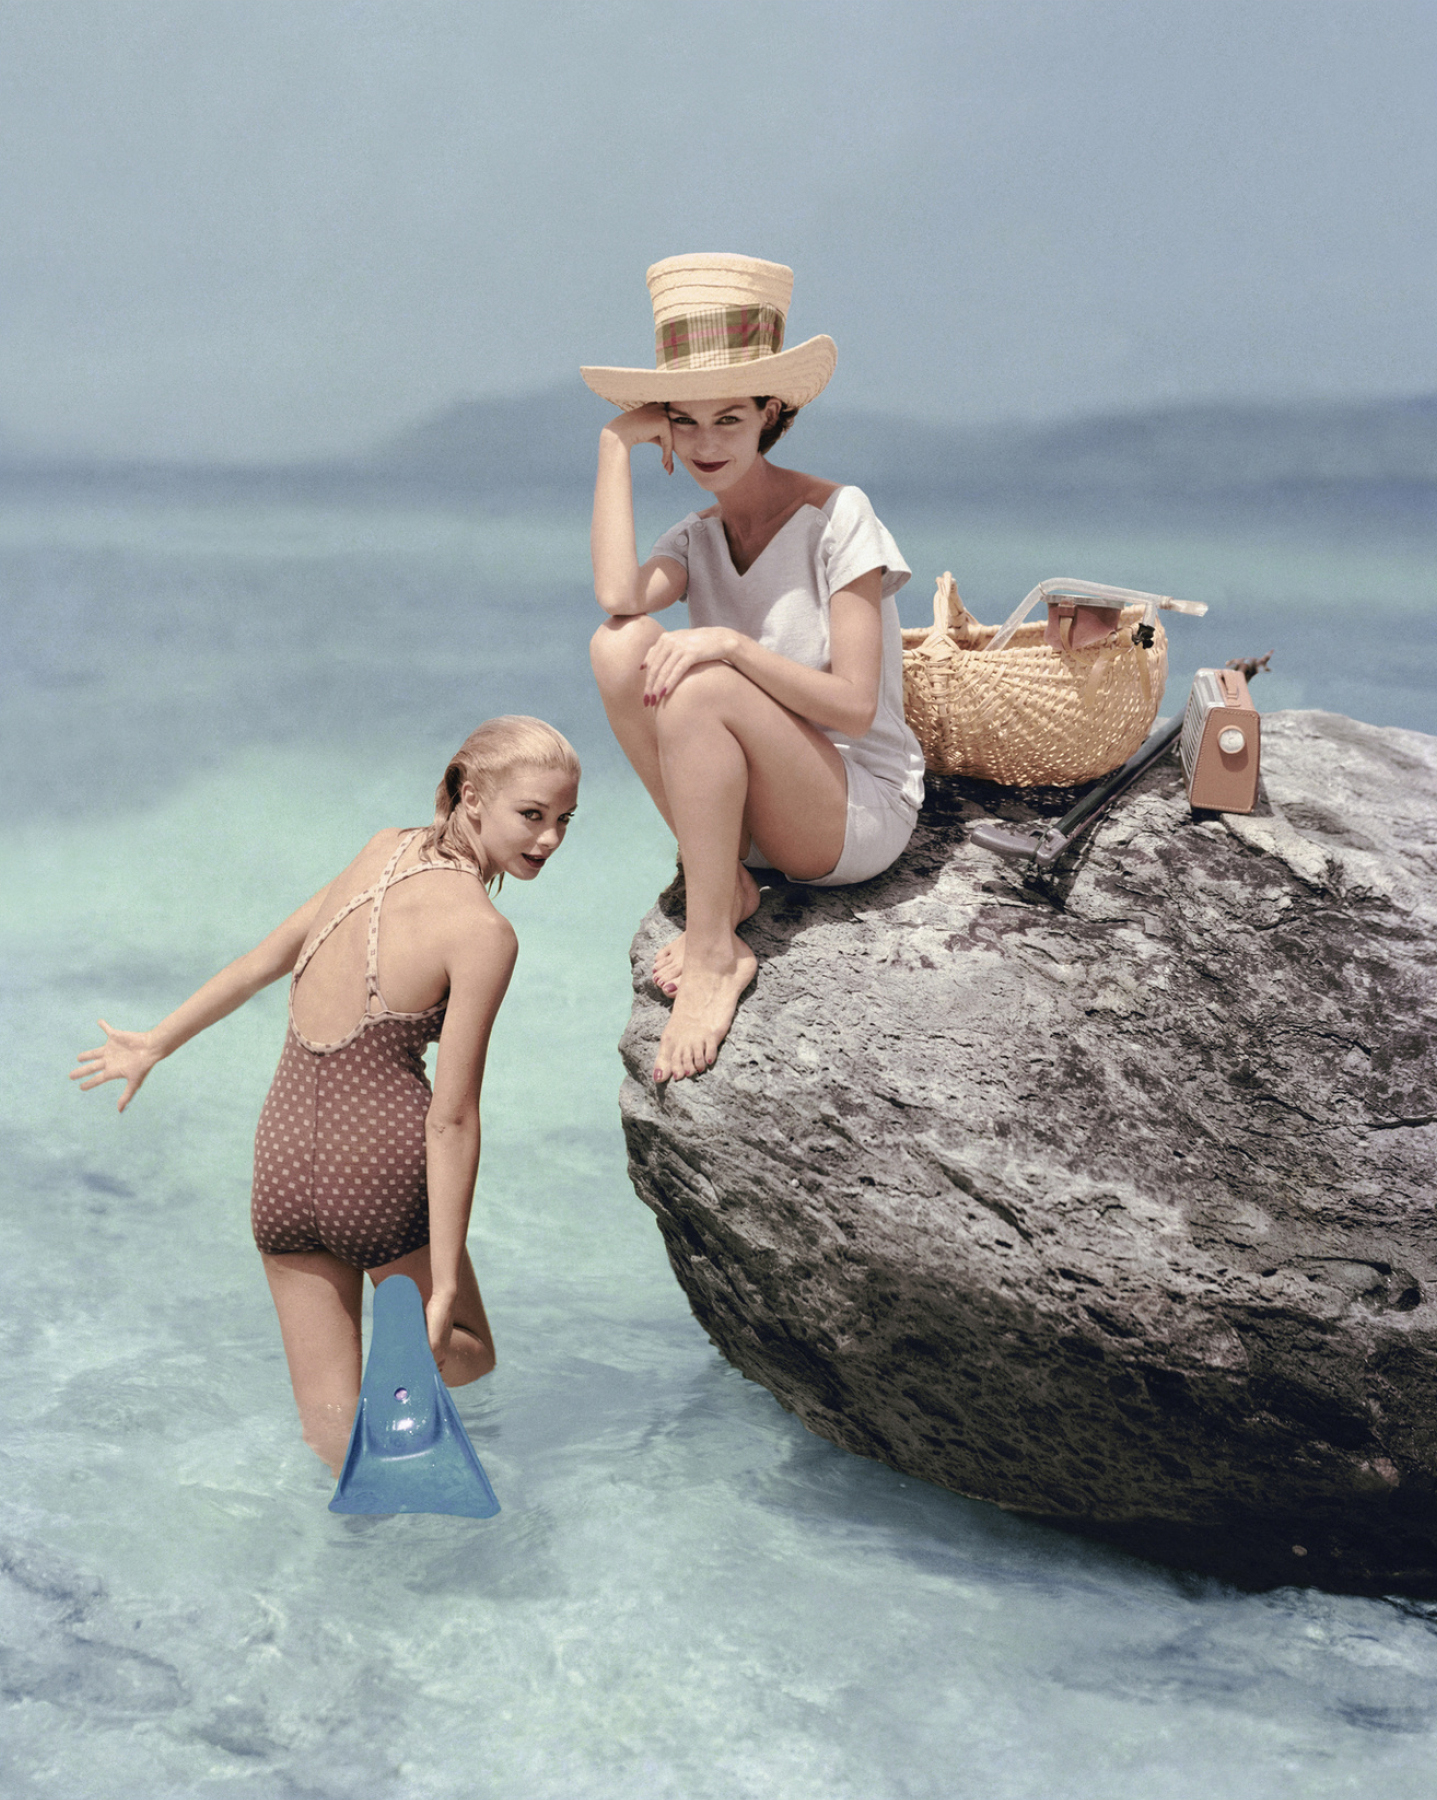 richard rutledge for vogue  reminds us of one of our other photography favorites,  slim Aarons . we have our eyes on this  print!